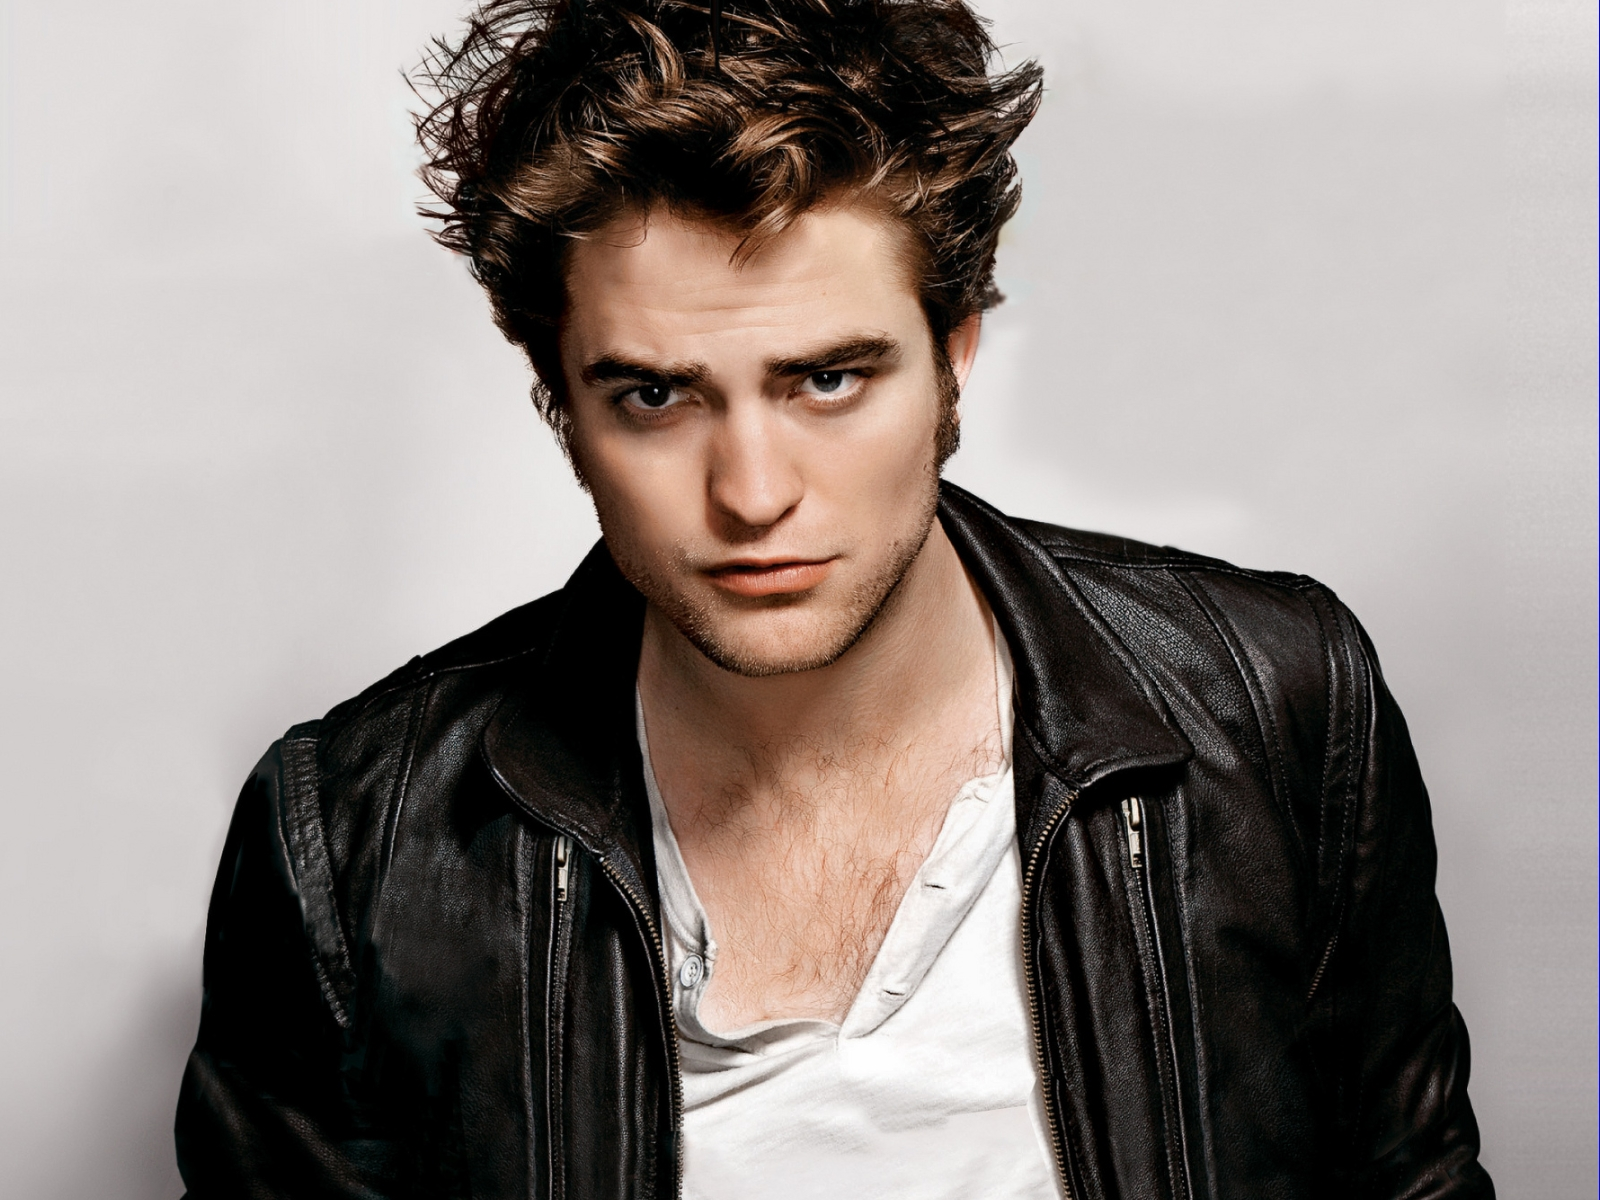 http://4.bp.blogspot.com/-buVn61iC9Ps/TwhLZ4y18dI/AAAAAAAAAt0/f1249tN2Dxc/s1600/Robert_Pattinson.jpg